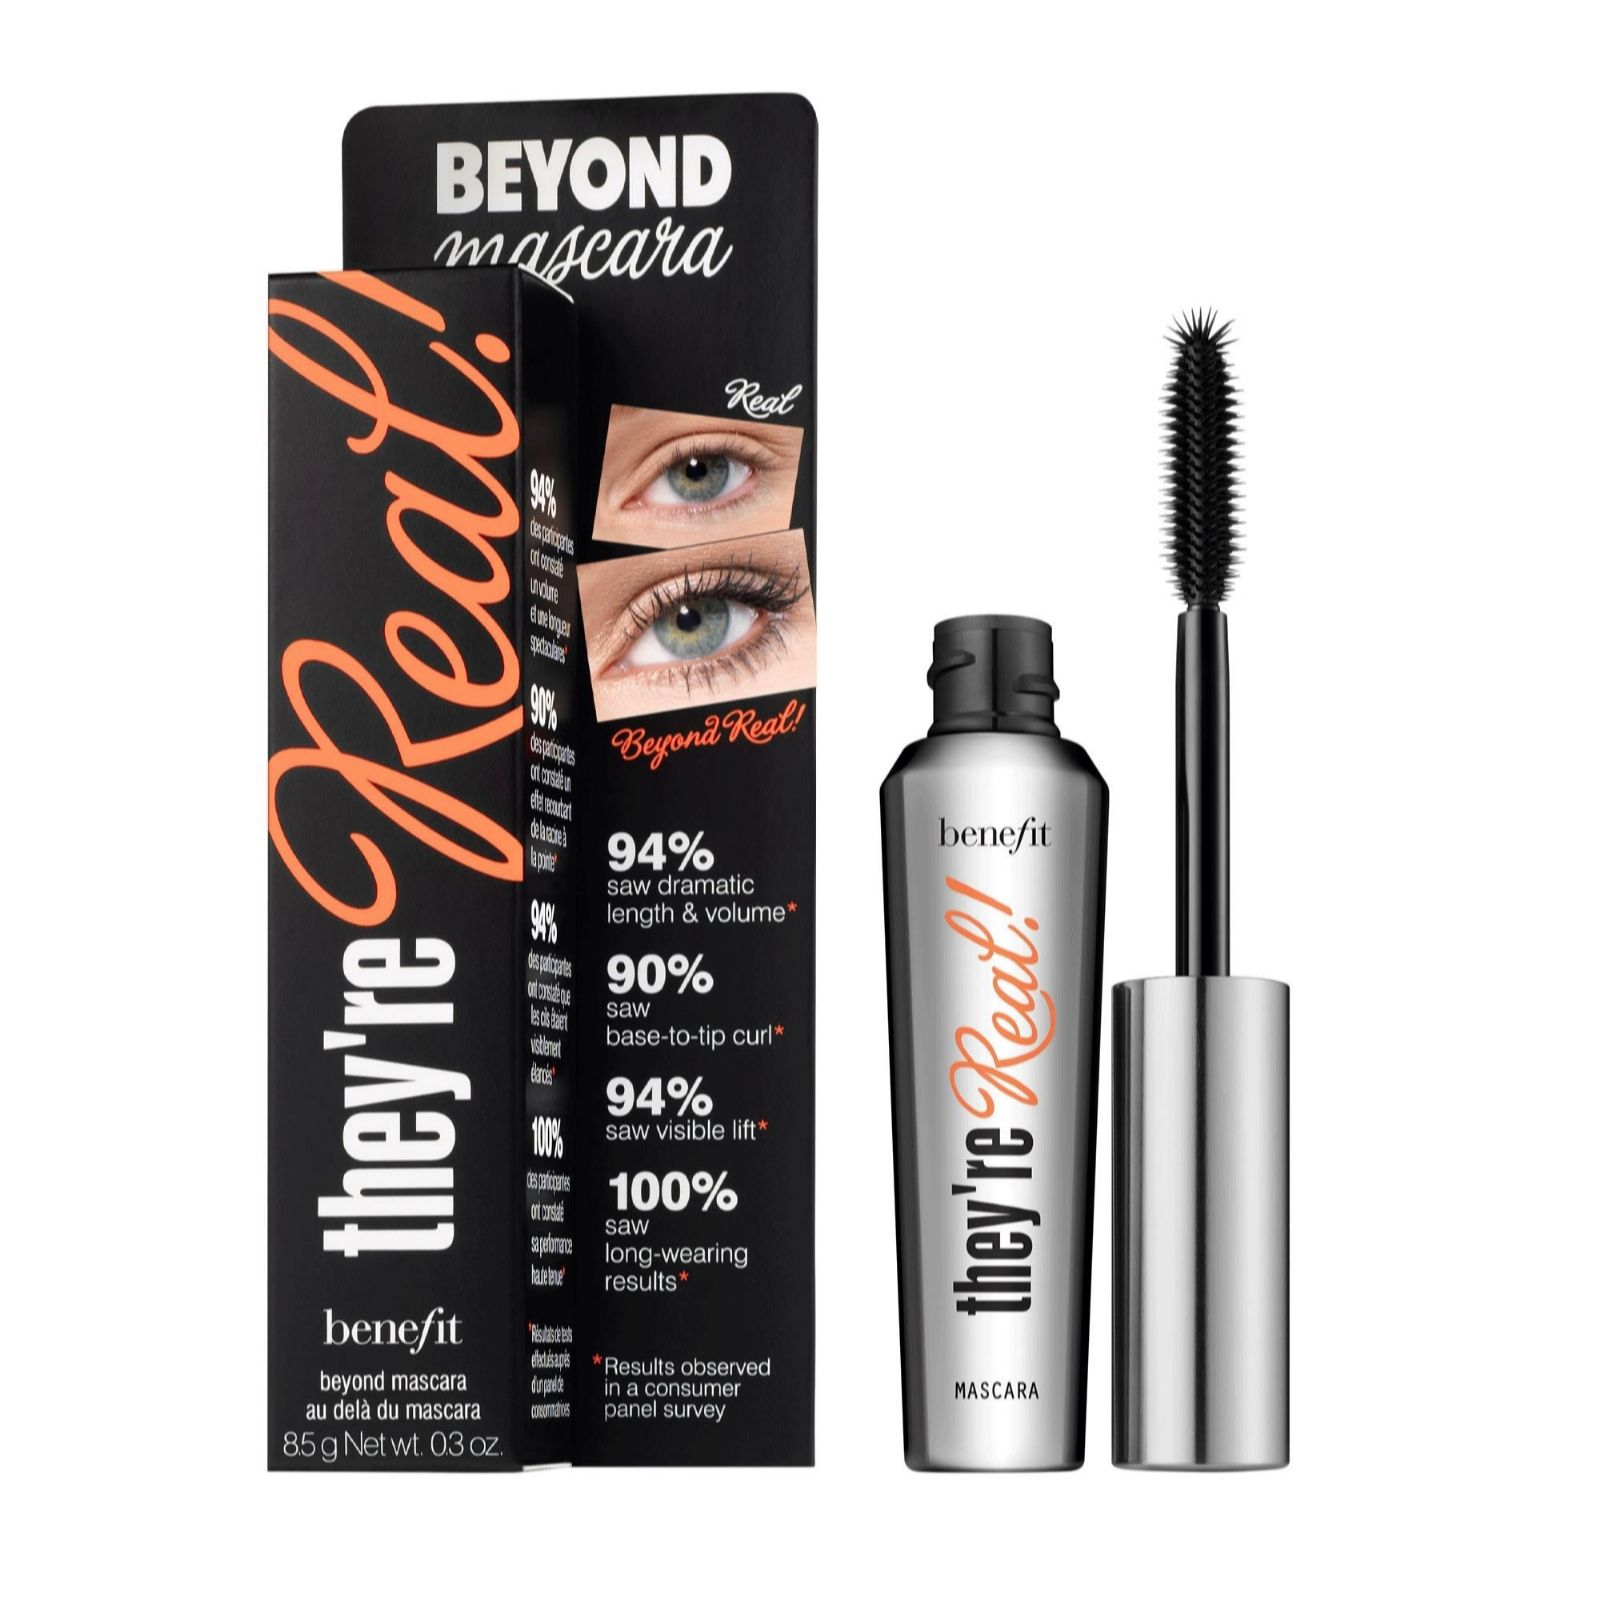 db6f18afd9b Benefit Mascara They're Real 8.5g - Page 1 - QVC UK